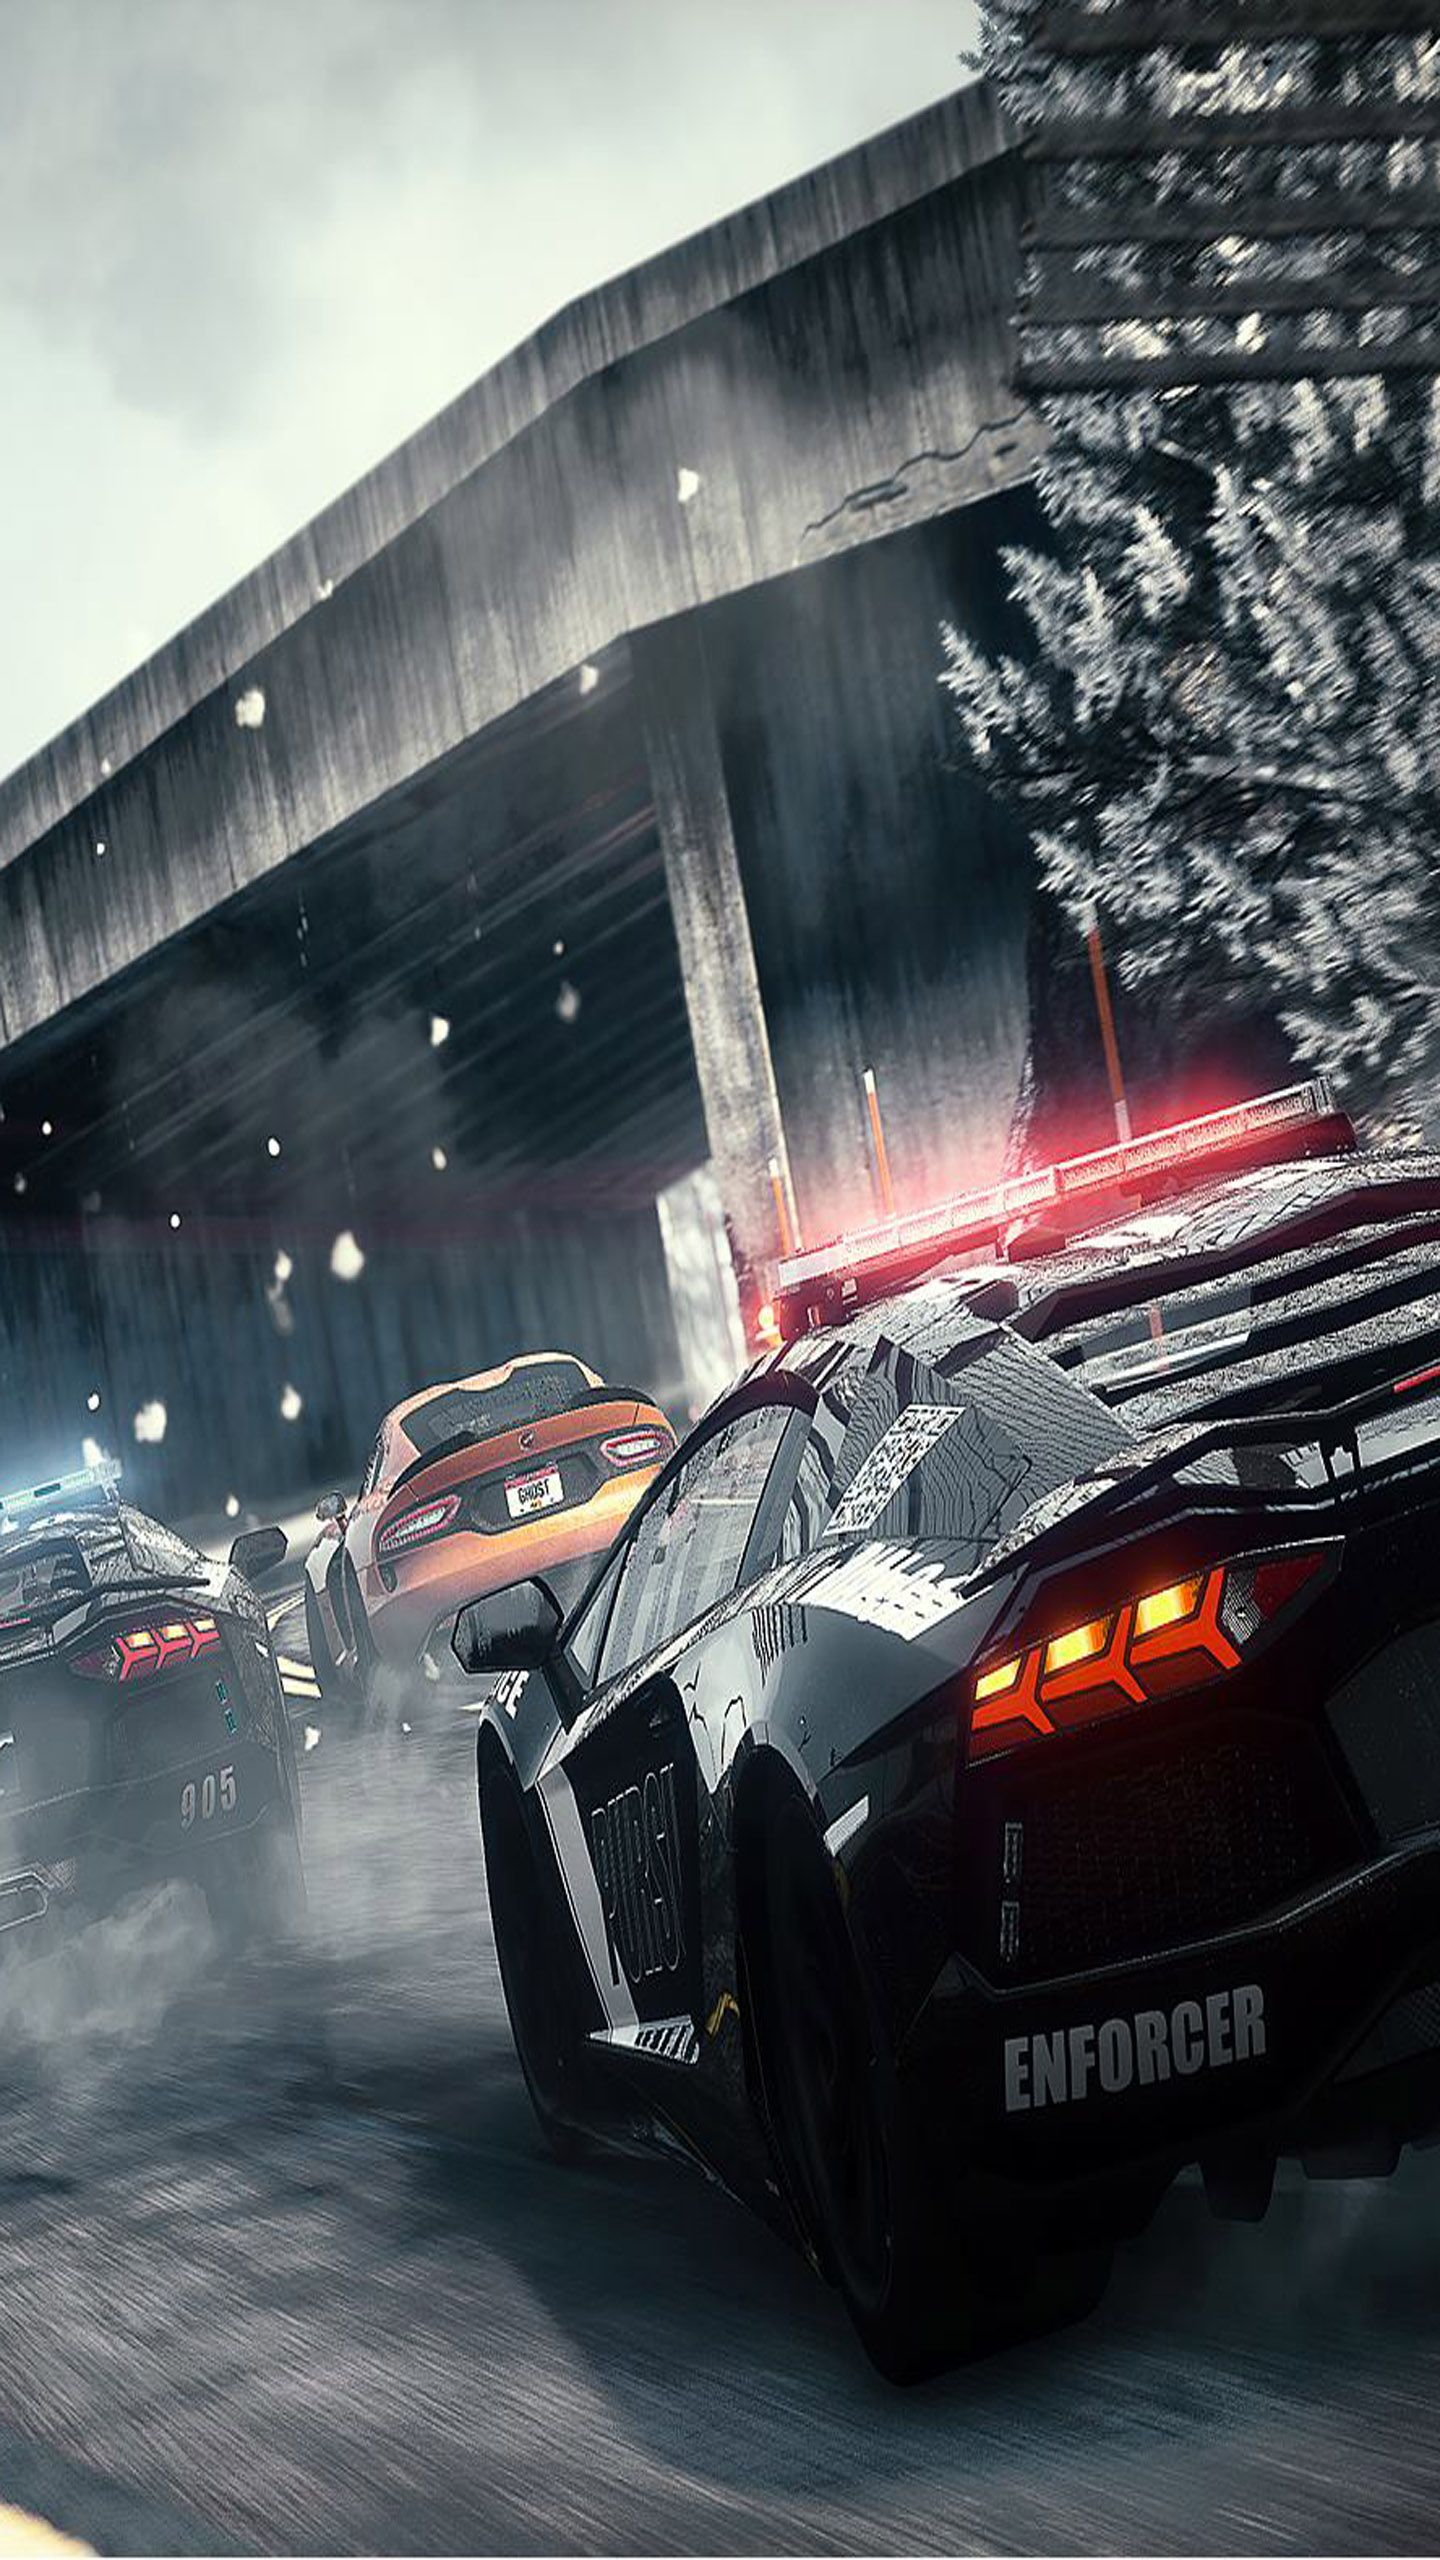 Need for speed rivals wallpaper for samsung galaxy s6 for Need for speed wallpaper